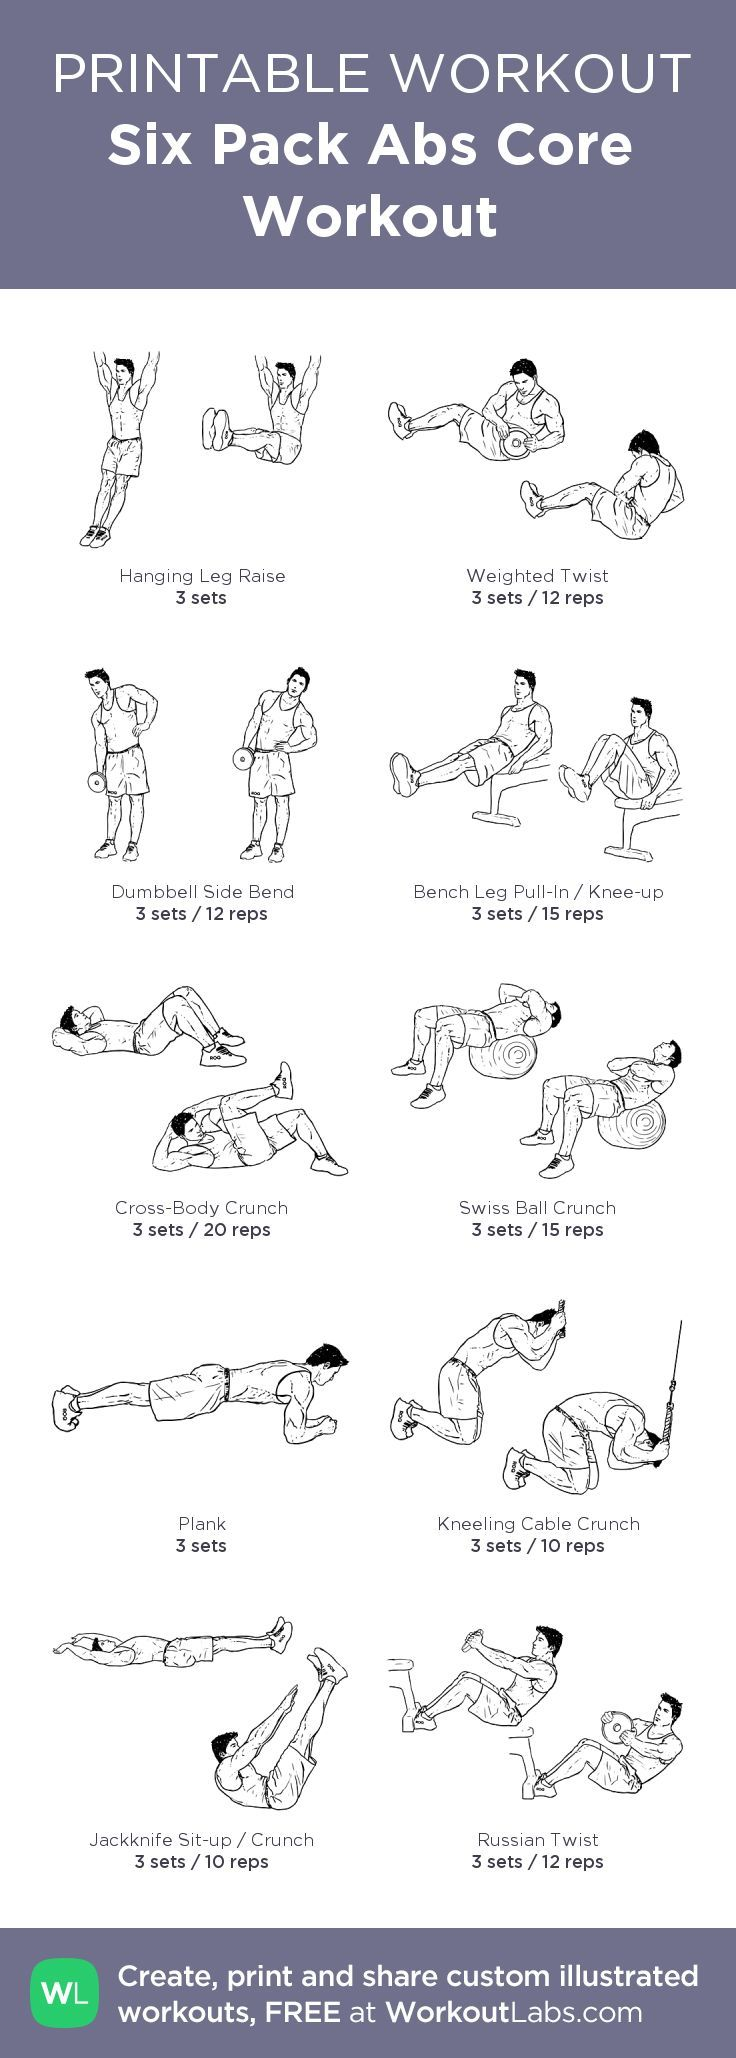 Best 25 Printable Workouts Ideas On Pinterest  Gym -8672